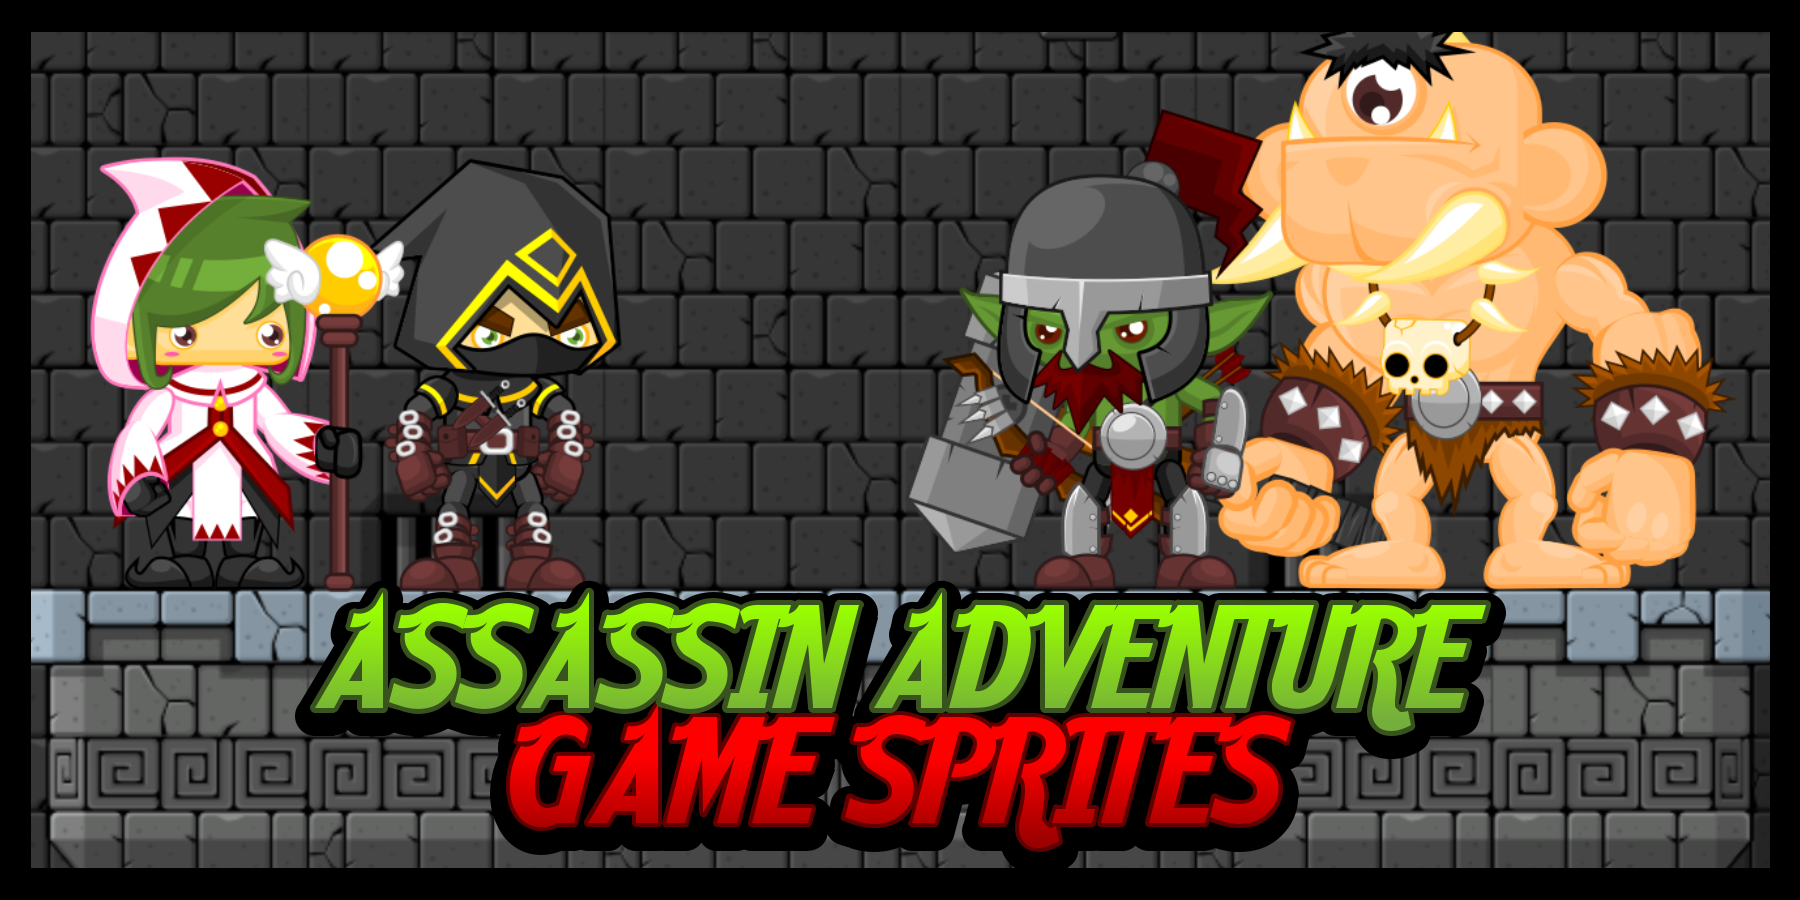 Assassin Adventure - Game Sprites